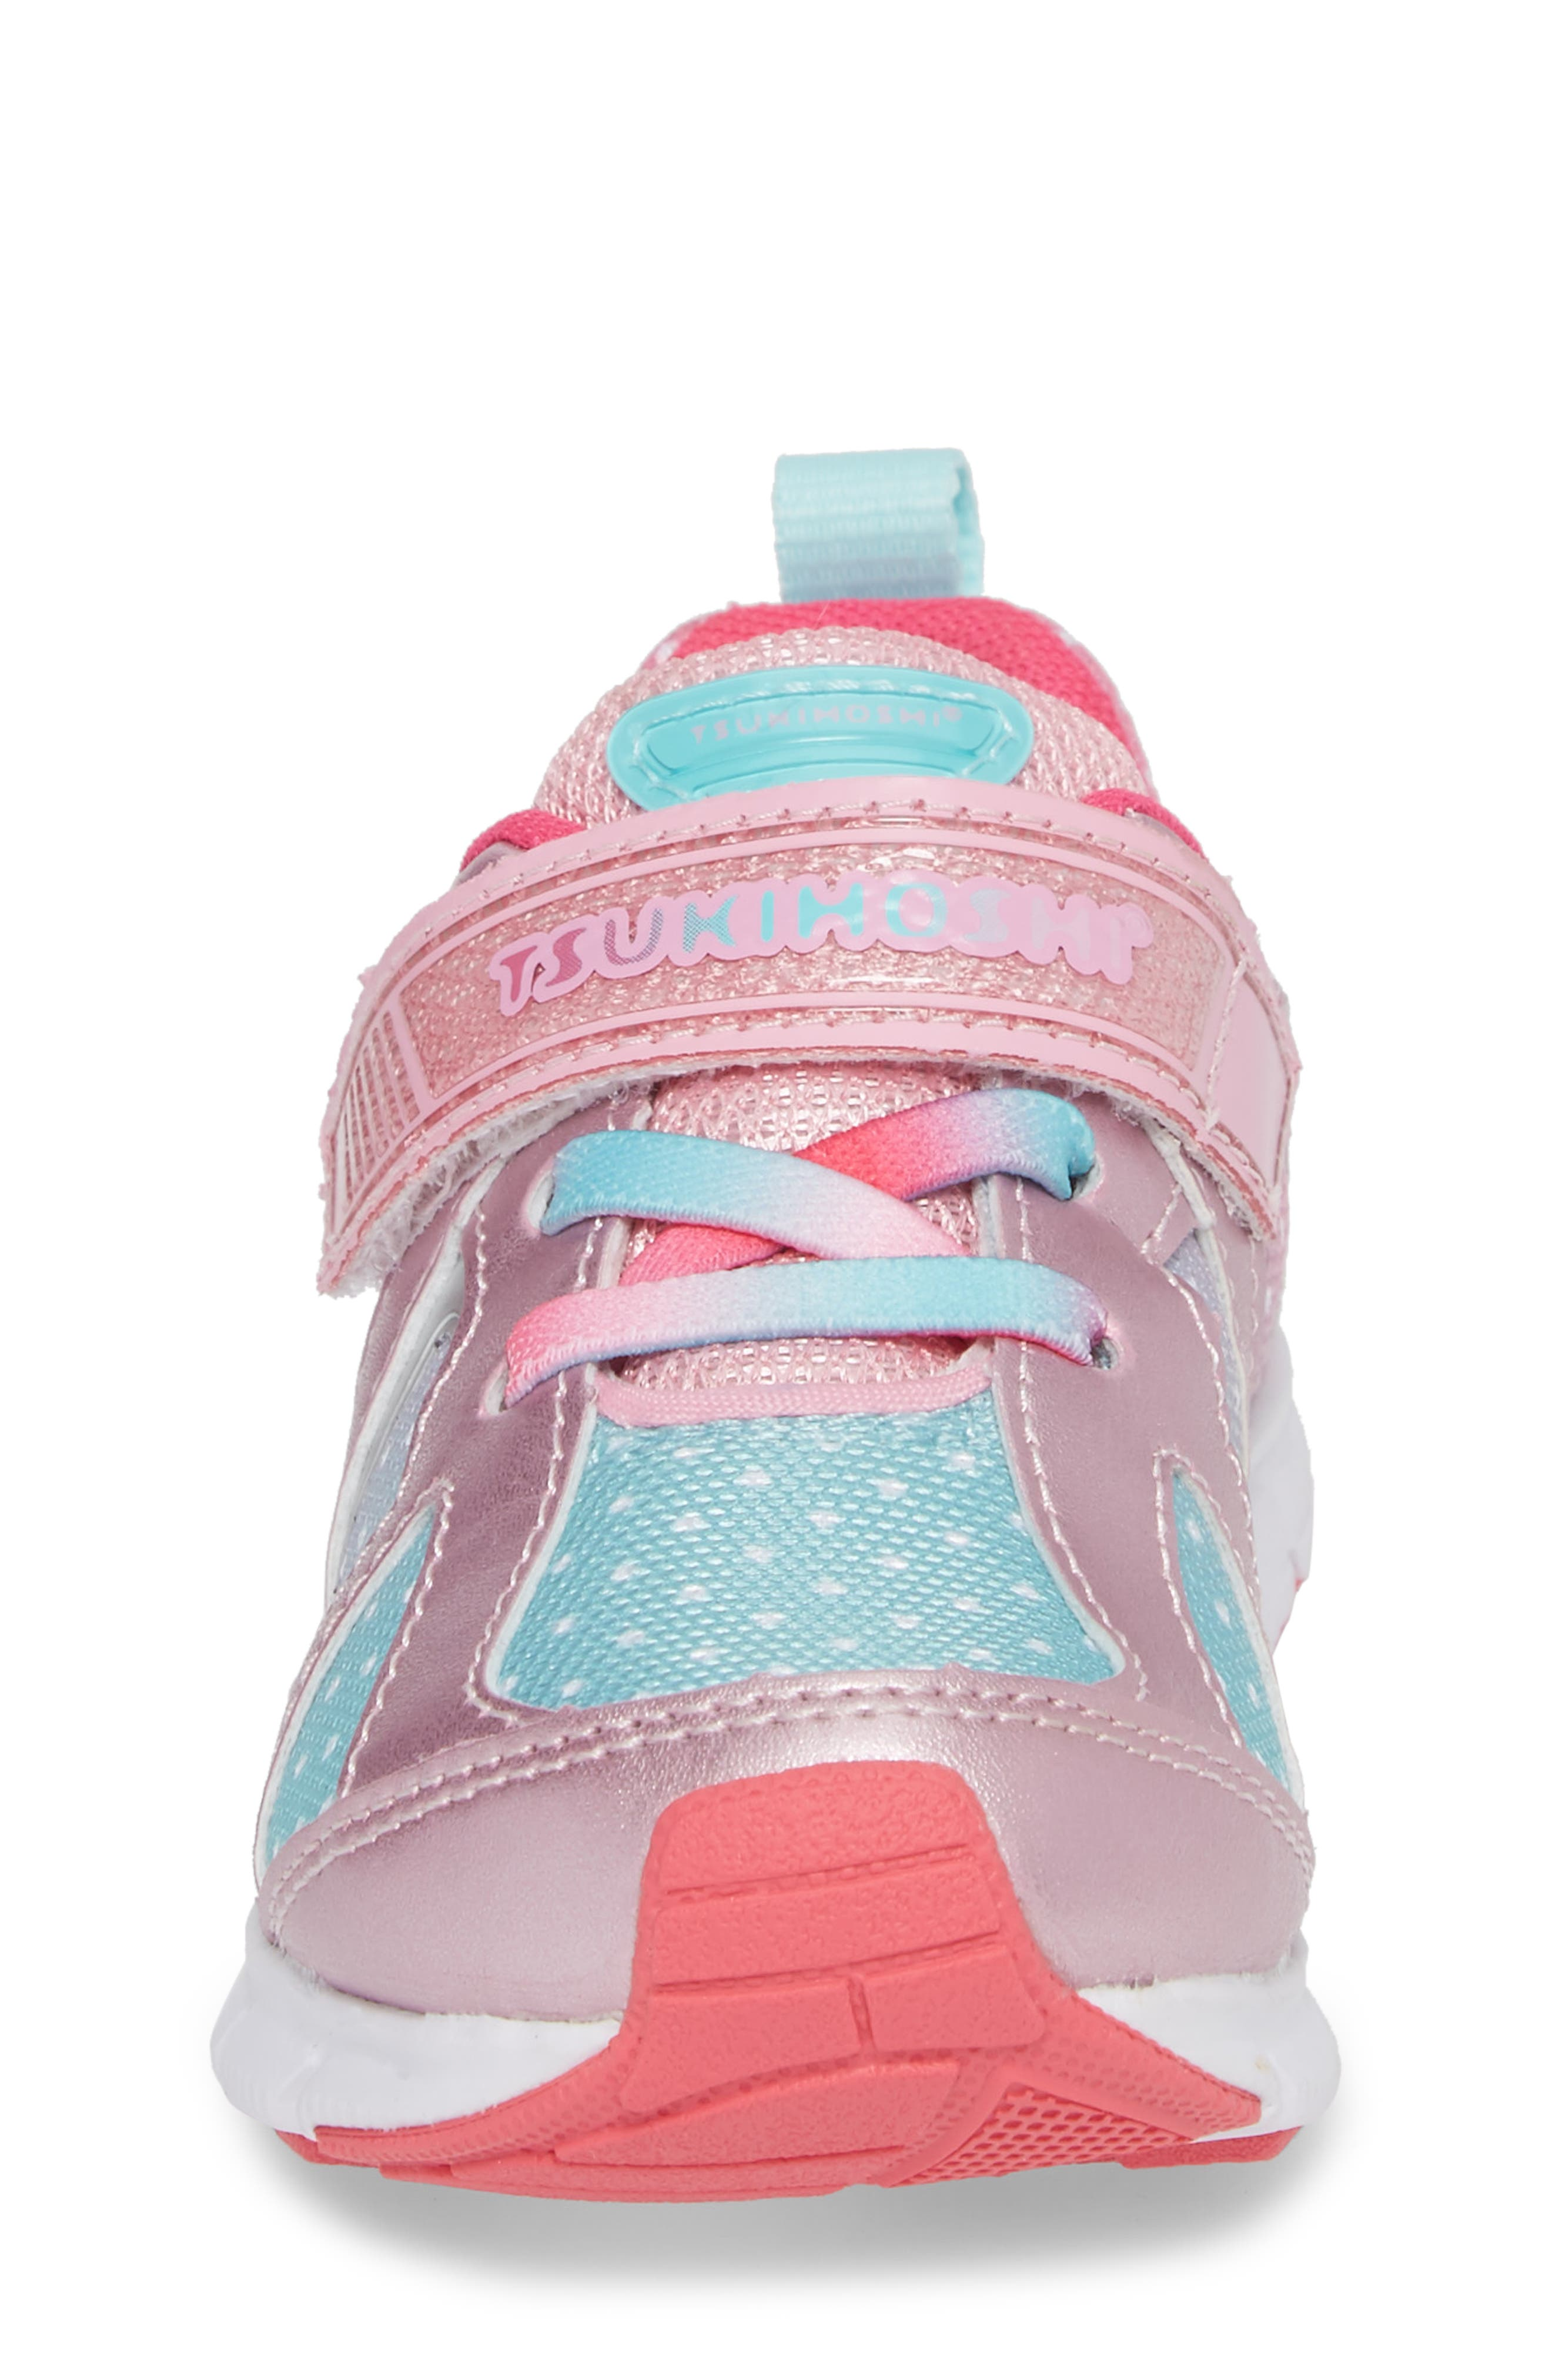 Rainbow Washable Sneaker,                             Alternate thumbnail 4, color,                             Rose/ Mint